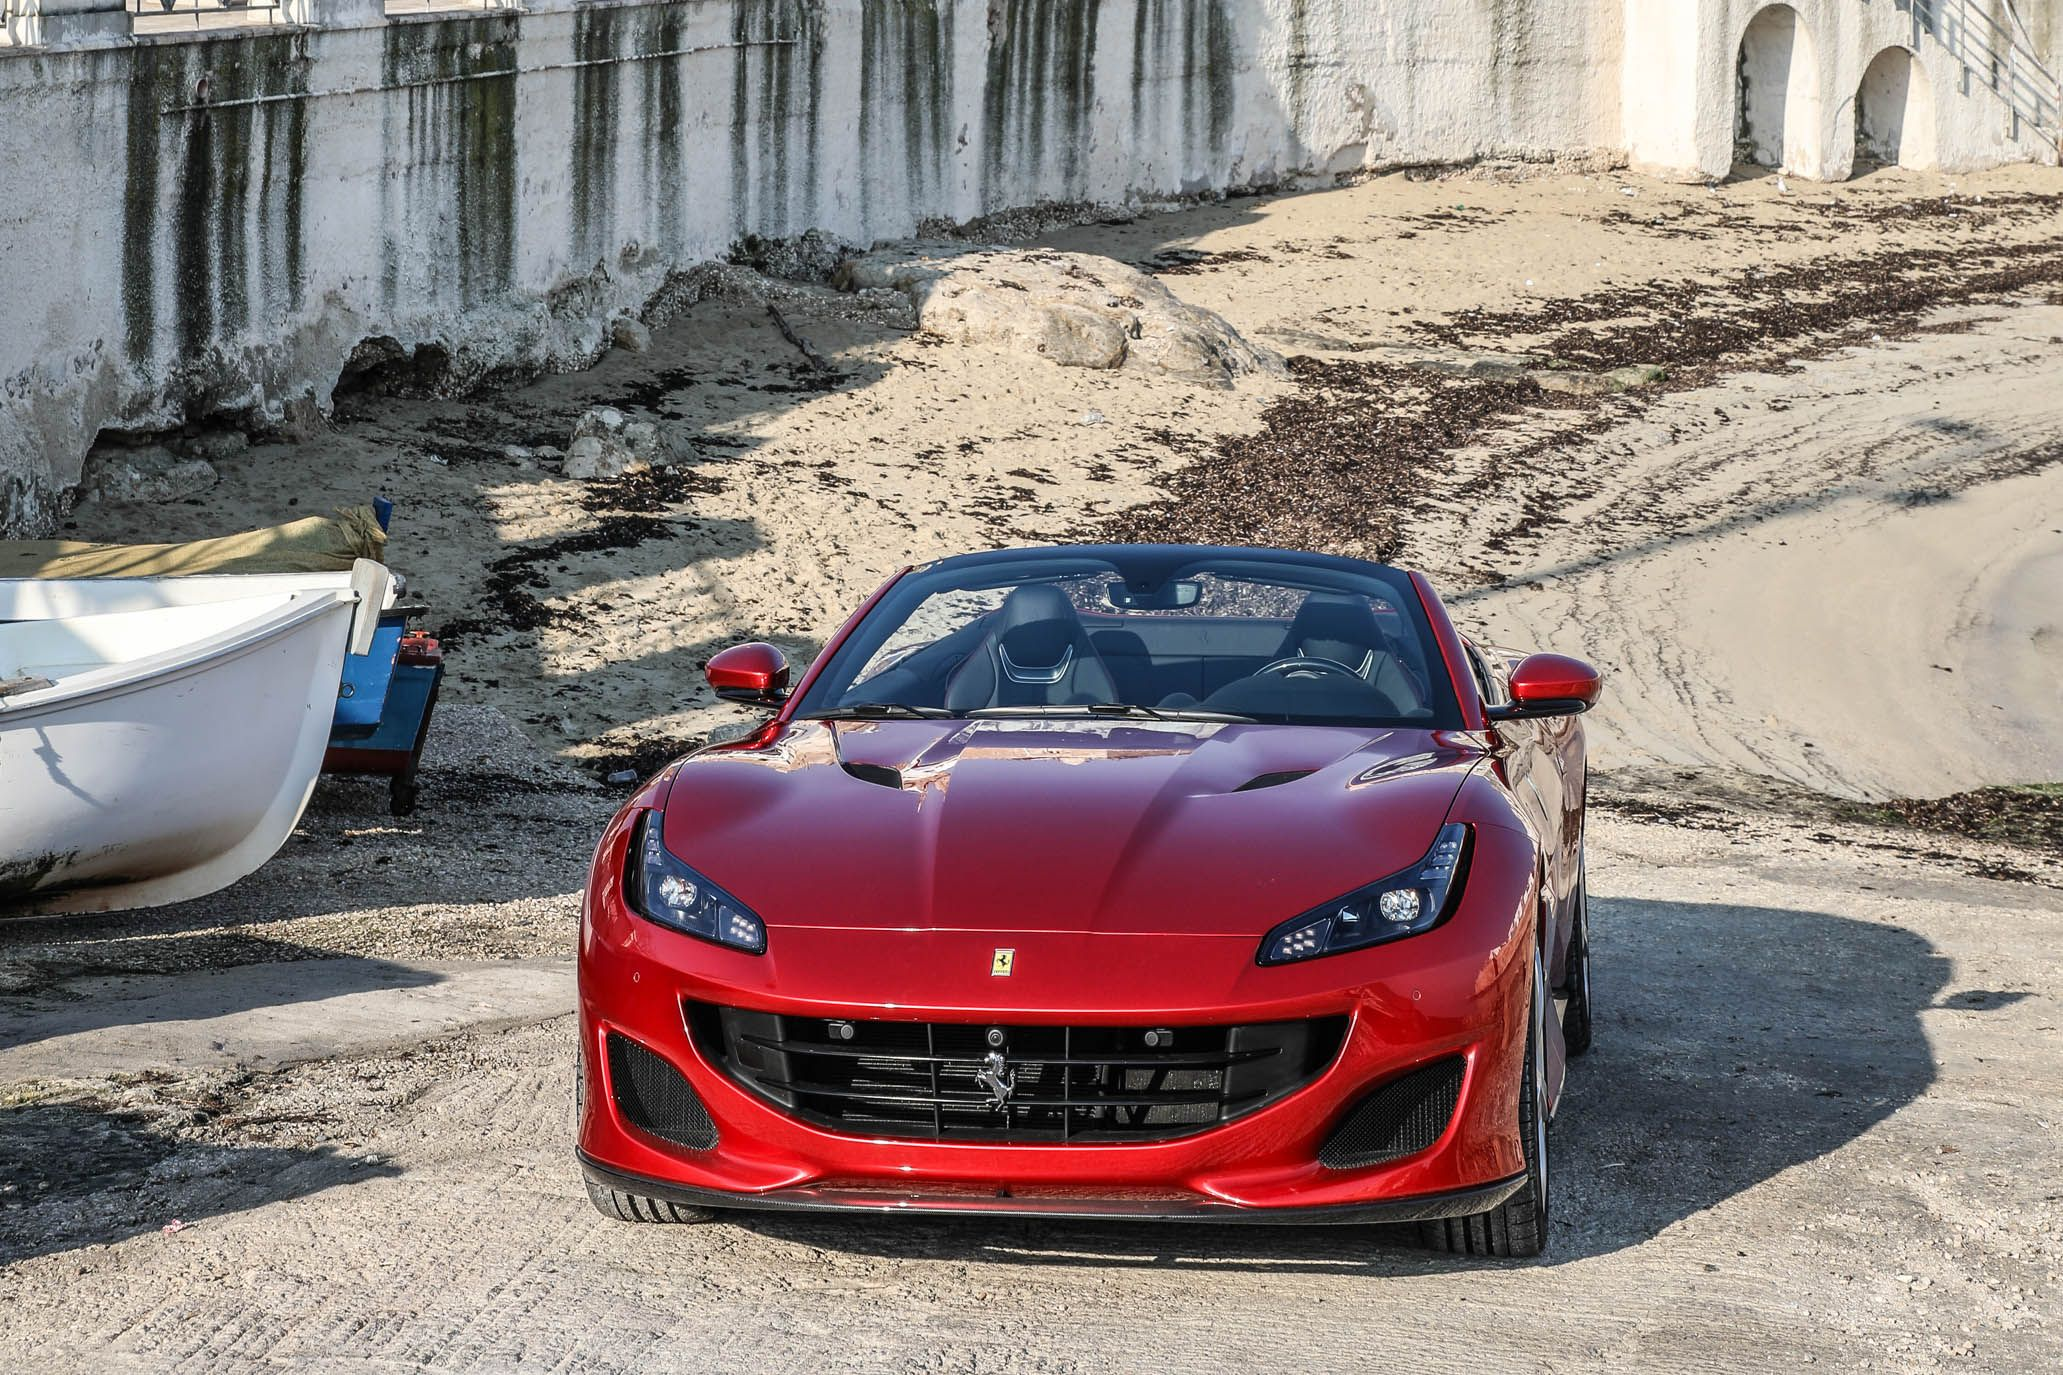 2018 ferrari portofino reviews | ferrari portofino price, photos